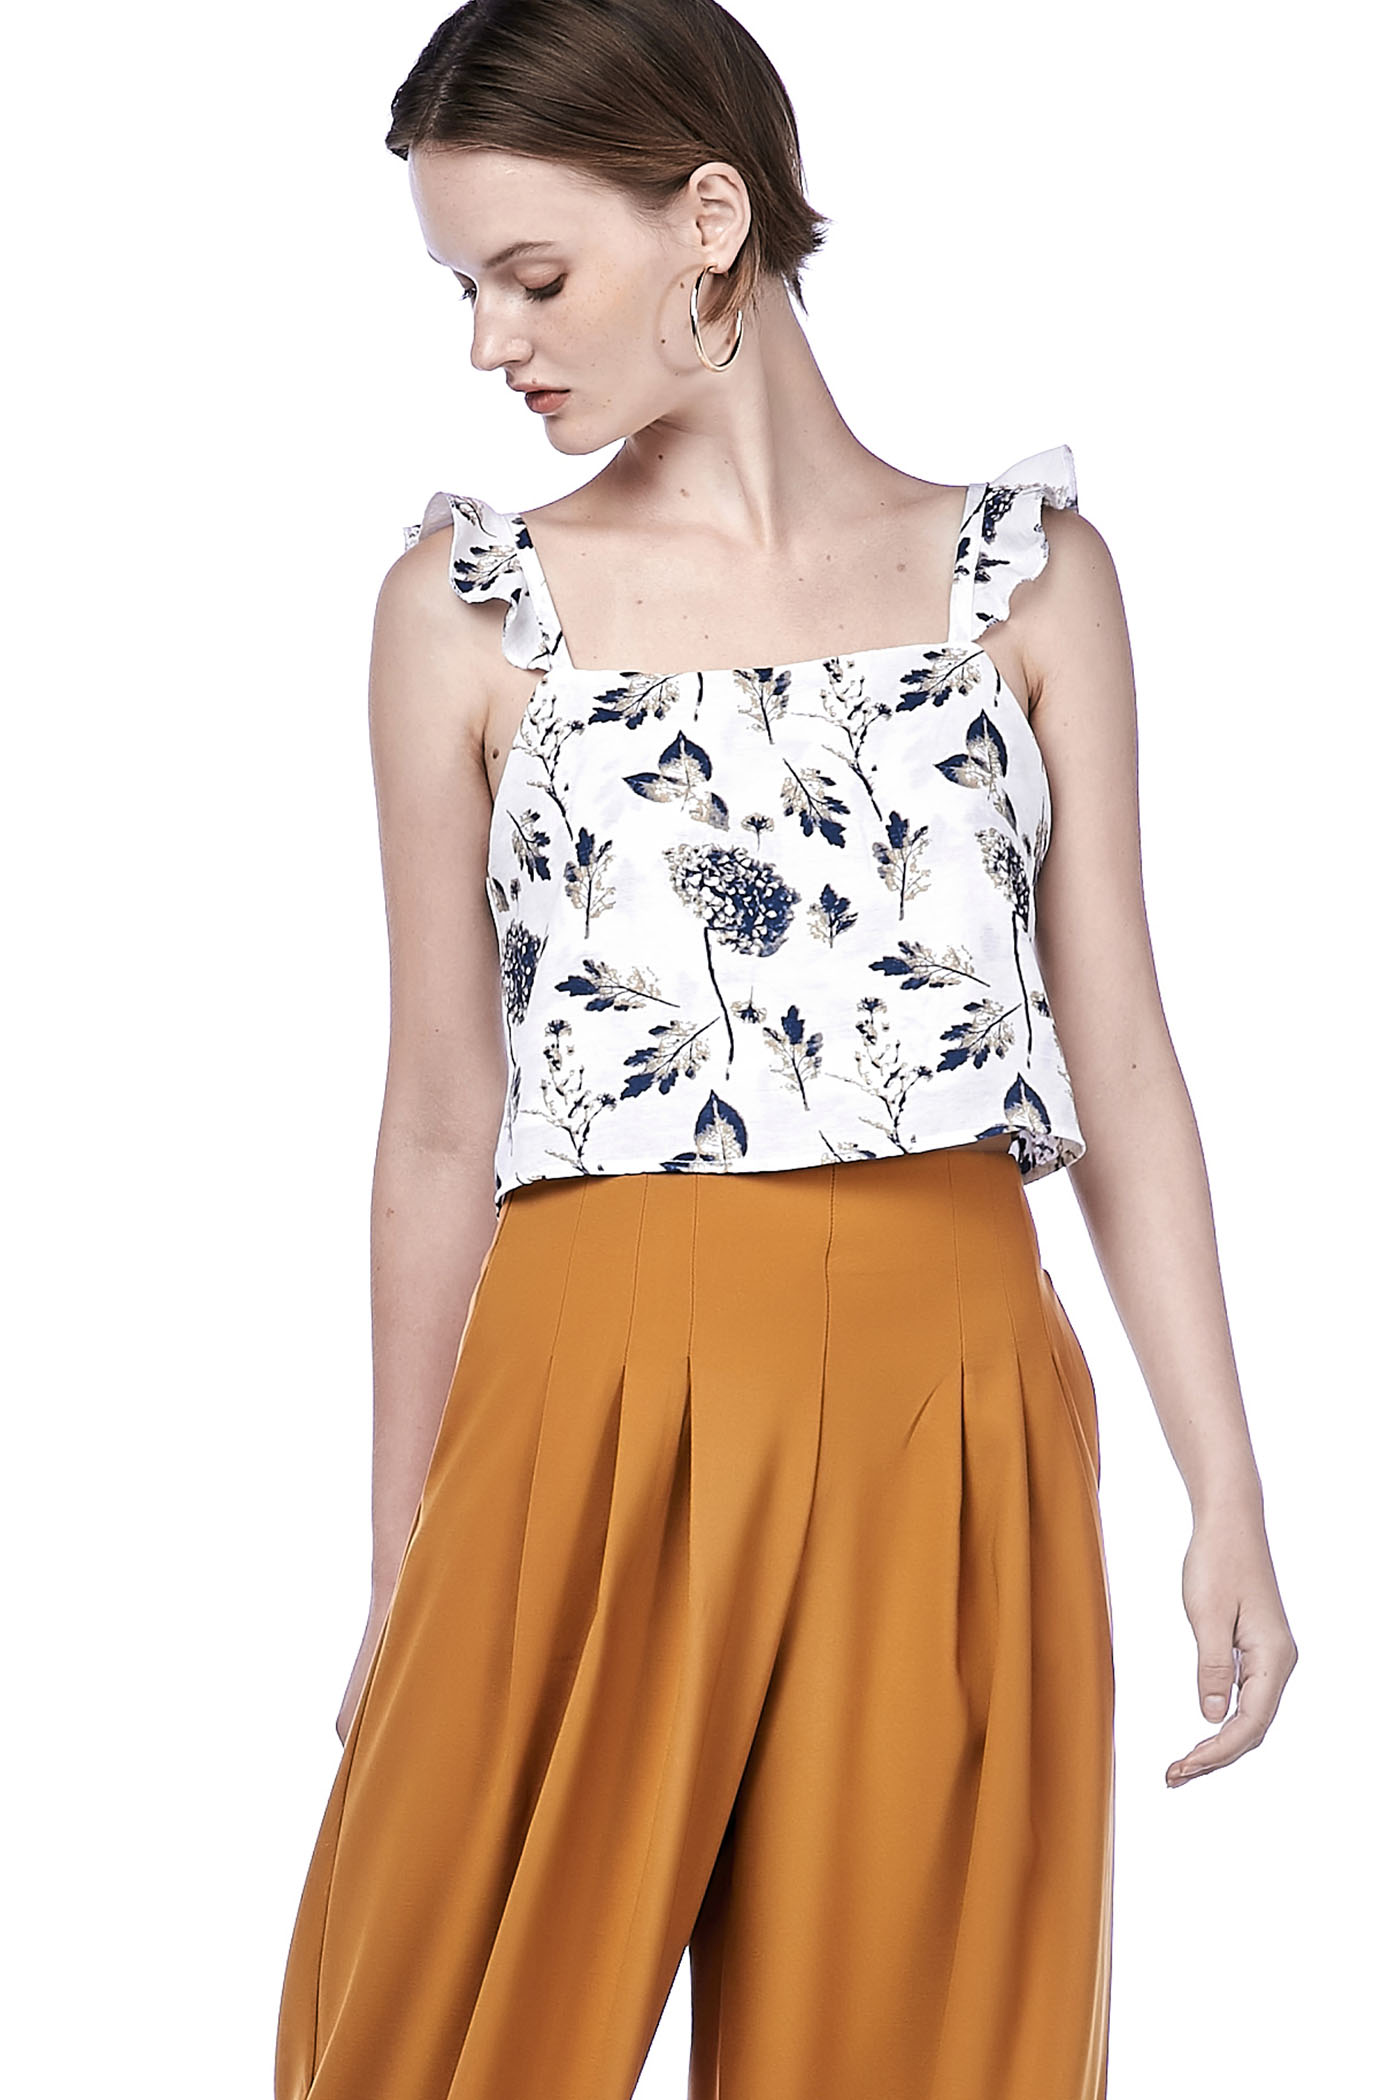 Tasheena Floral Crop Top